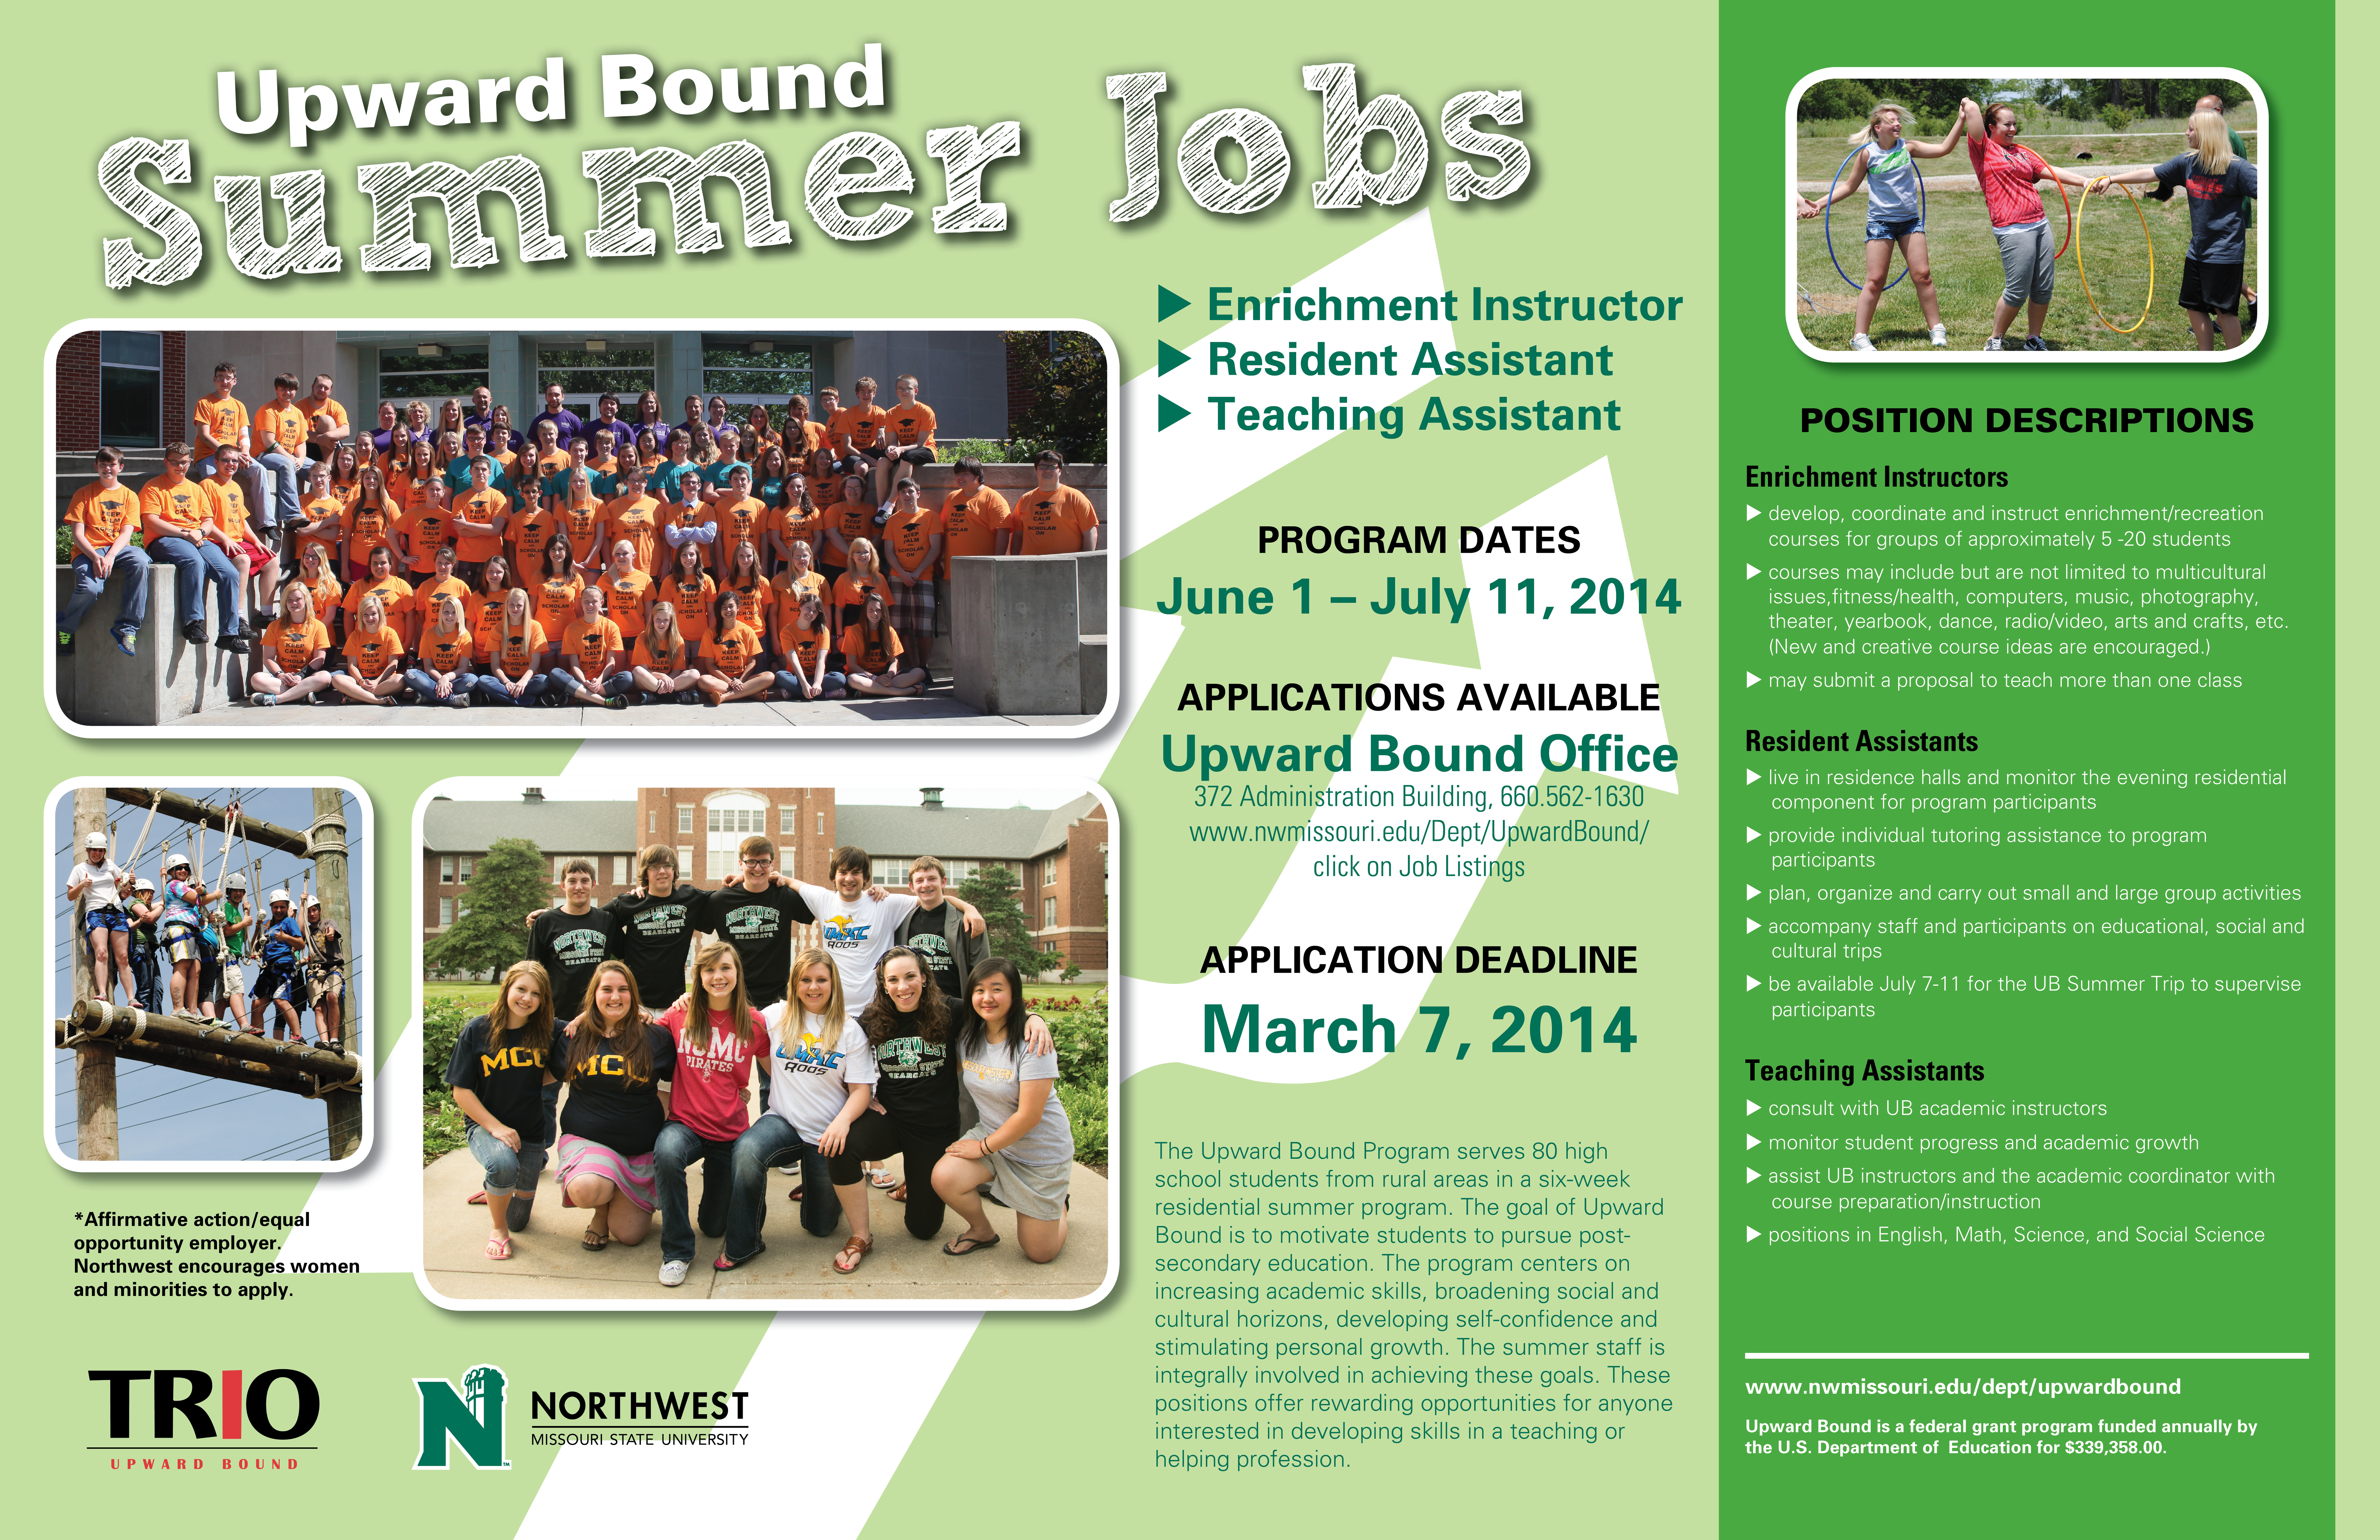 summer jobs poster14 brittany ehlers 10200 × 6601 in print design